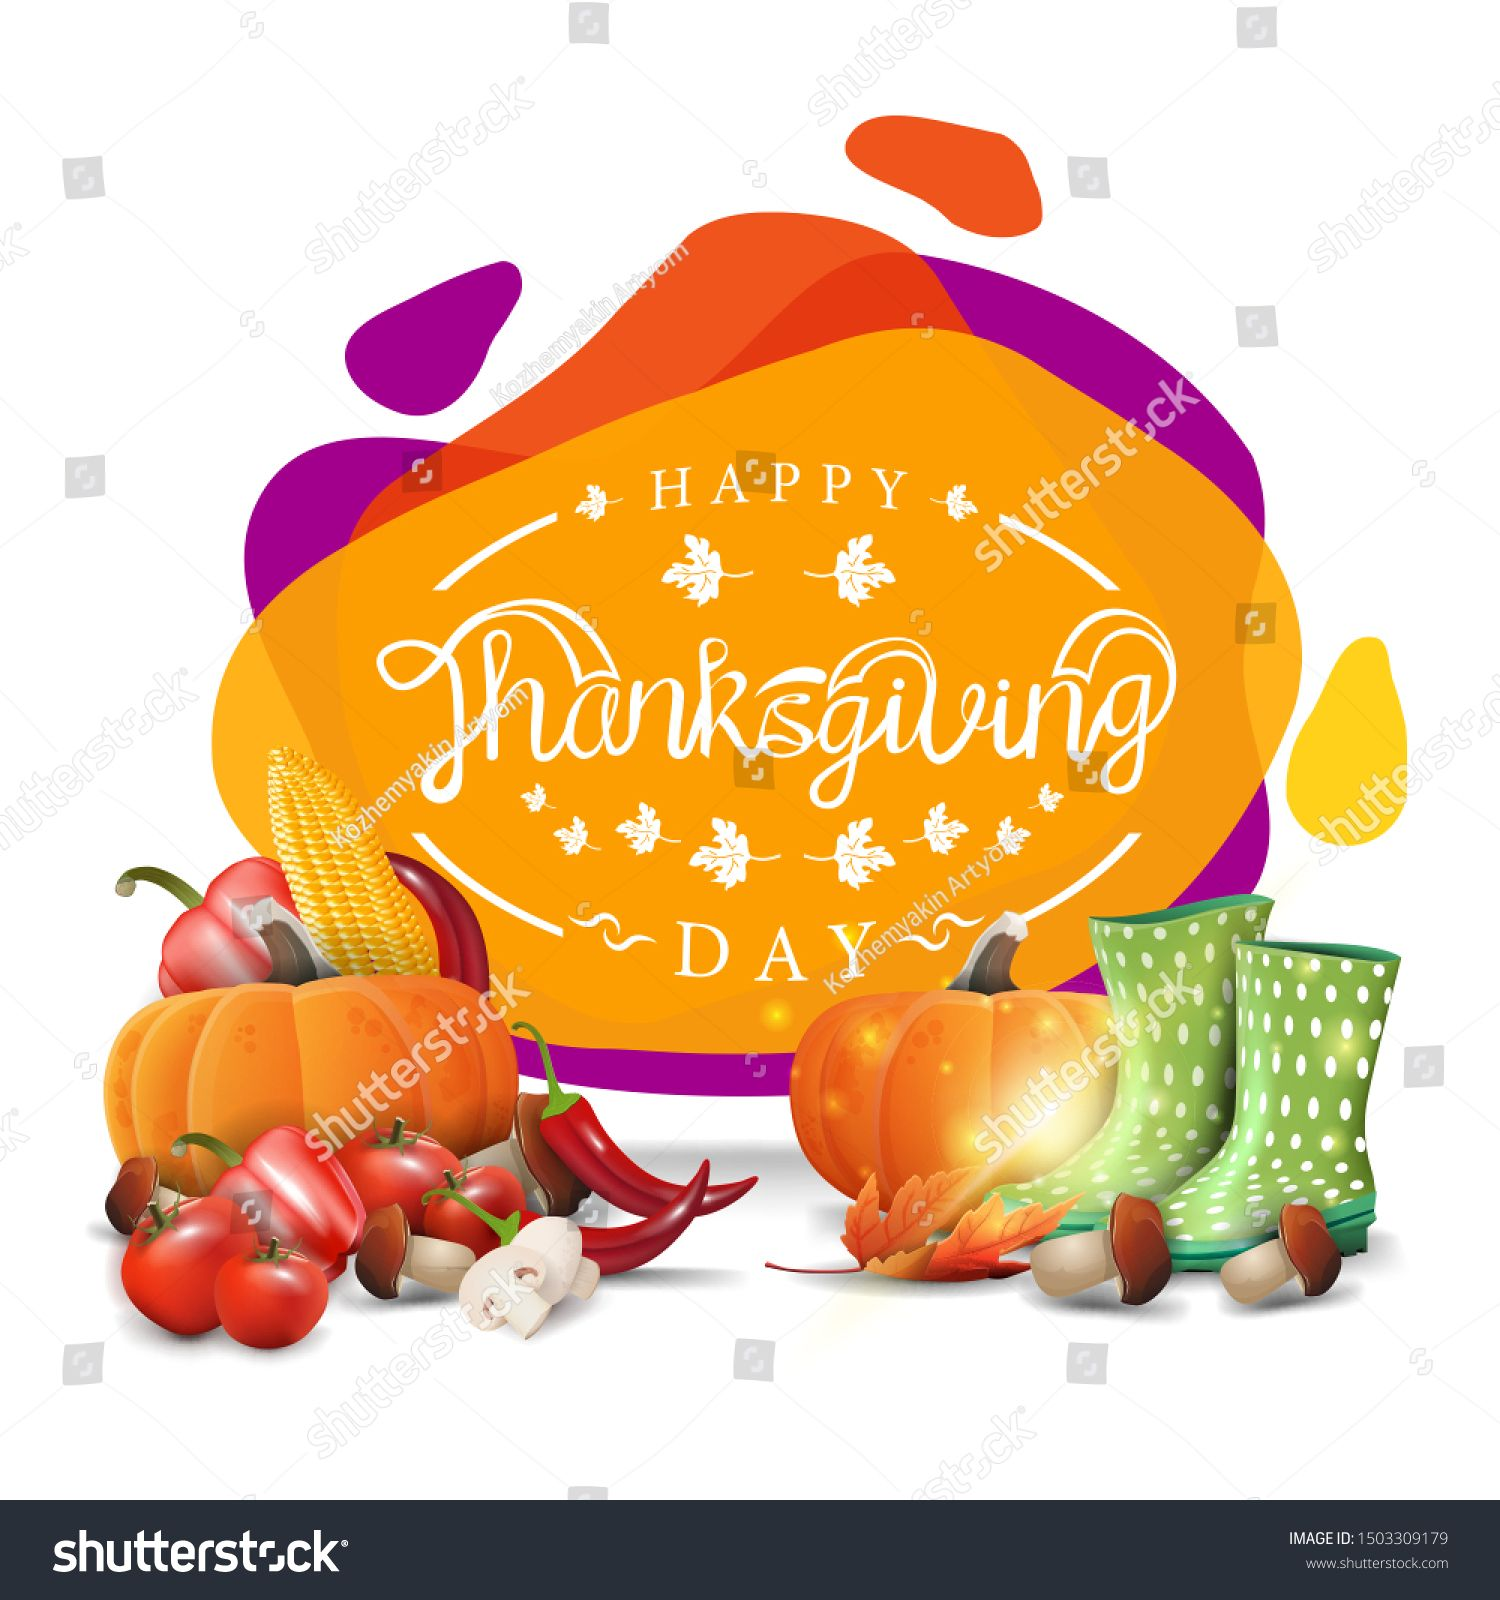 Happy Thanksgiving creative greeting banner with modern liquid design Postcard with rubber boots and autumn harvest